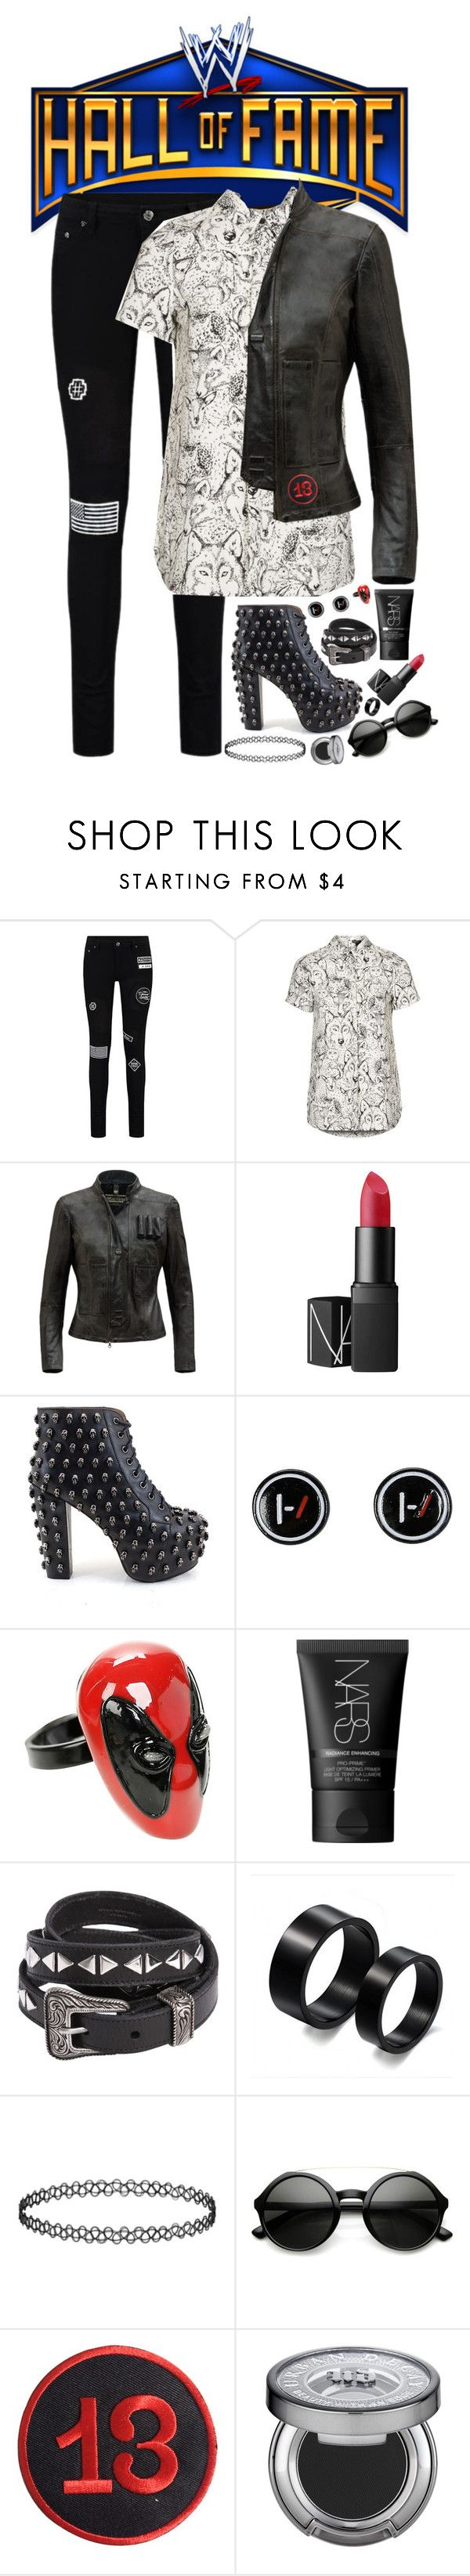 """""""WRESTLING INC BREAKING NEWS: Indie wrestler Lyrica seen at WWE Hall Of Fame Ceremony with friend Dean Ambrose (read desc.)"""" by jet-black-fart ❤ liked on Polyvore featuring Topshop, NARS Cosmetics, Jeffrey Campbell, Yves Saint Laurent, LUCKY 13 and Urban Decay"""